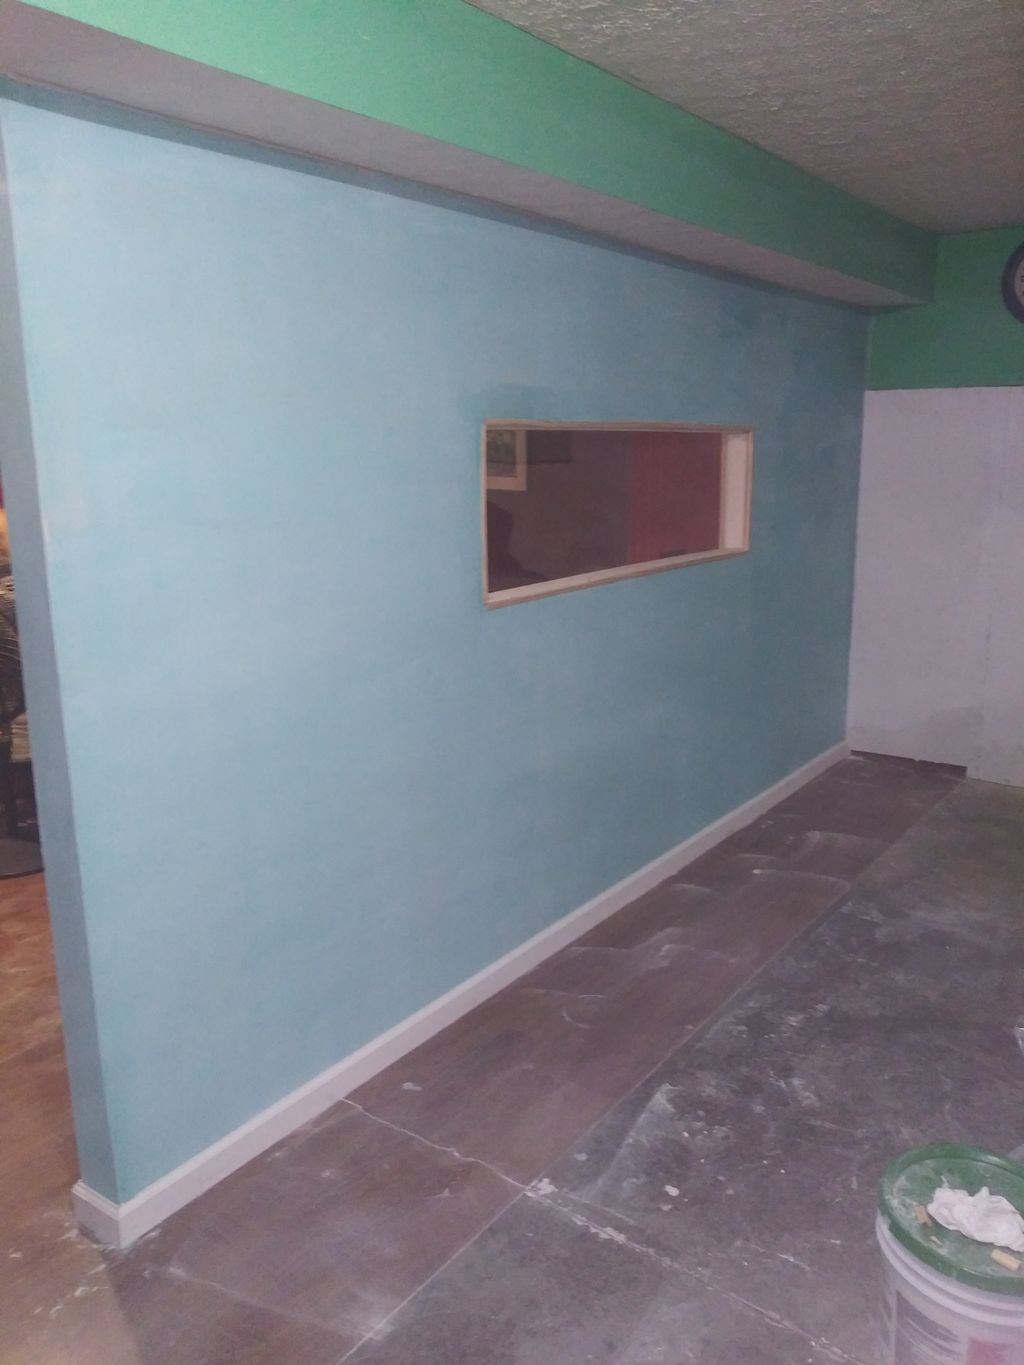 Wall frame and drywall